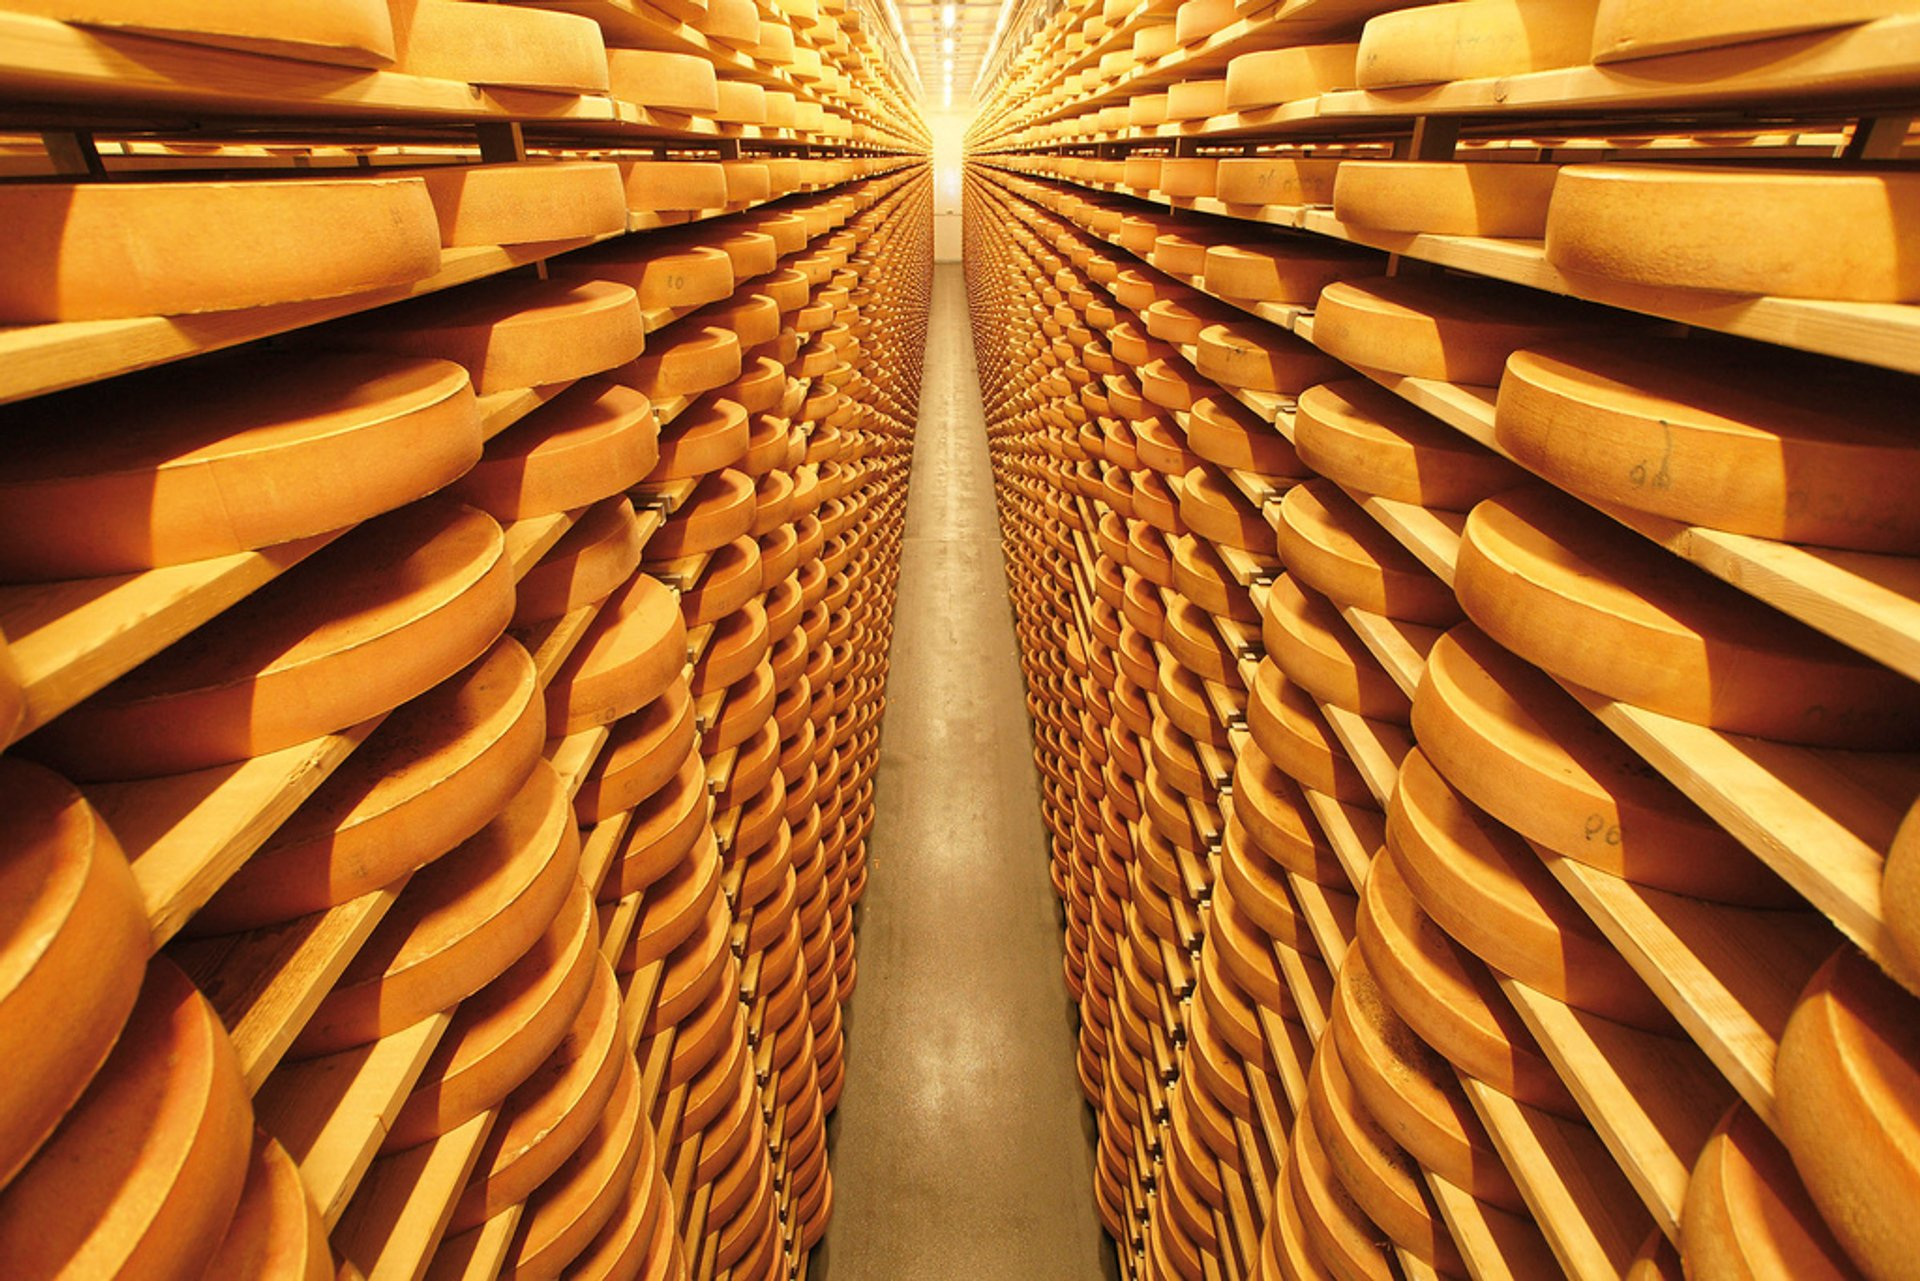 KäseStrasse or the Cheese Trail in Austria 2020 - Best Time